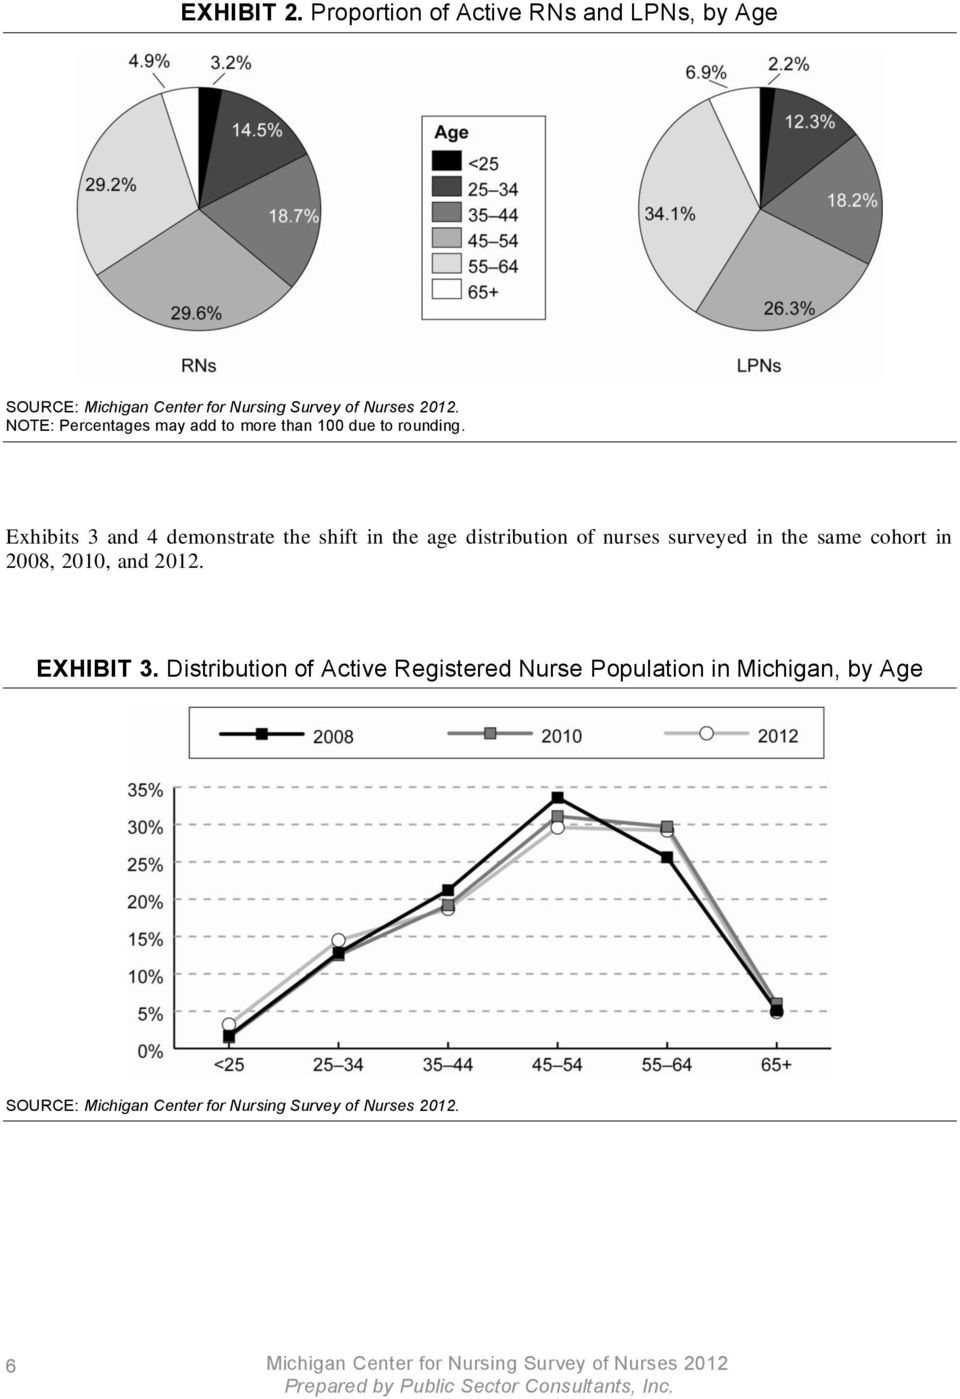 Exhibits 3 and 4 demonstrate the shift in the age distribution of nurses surveyed in